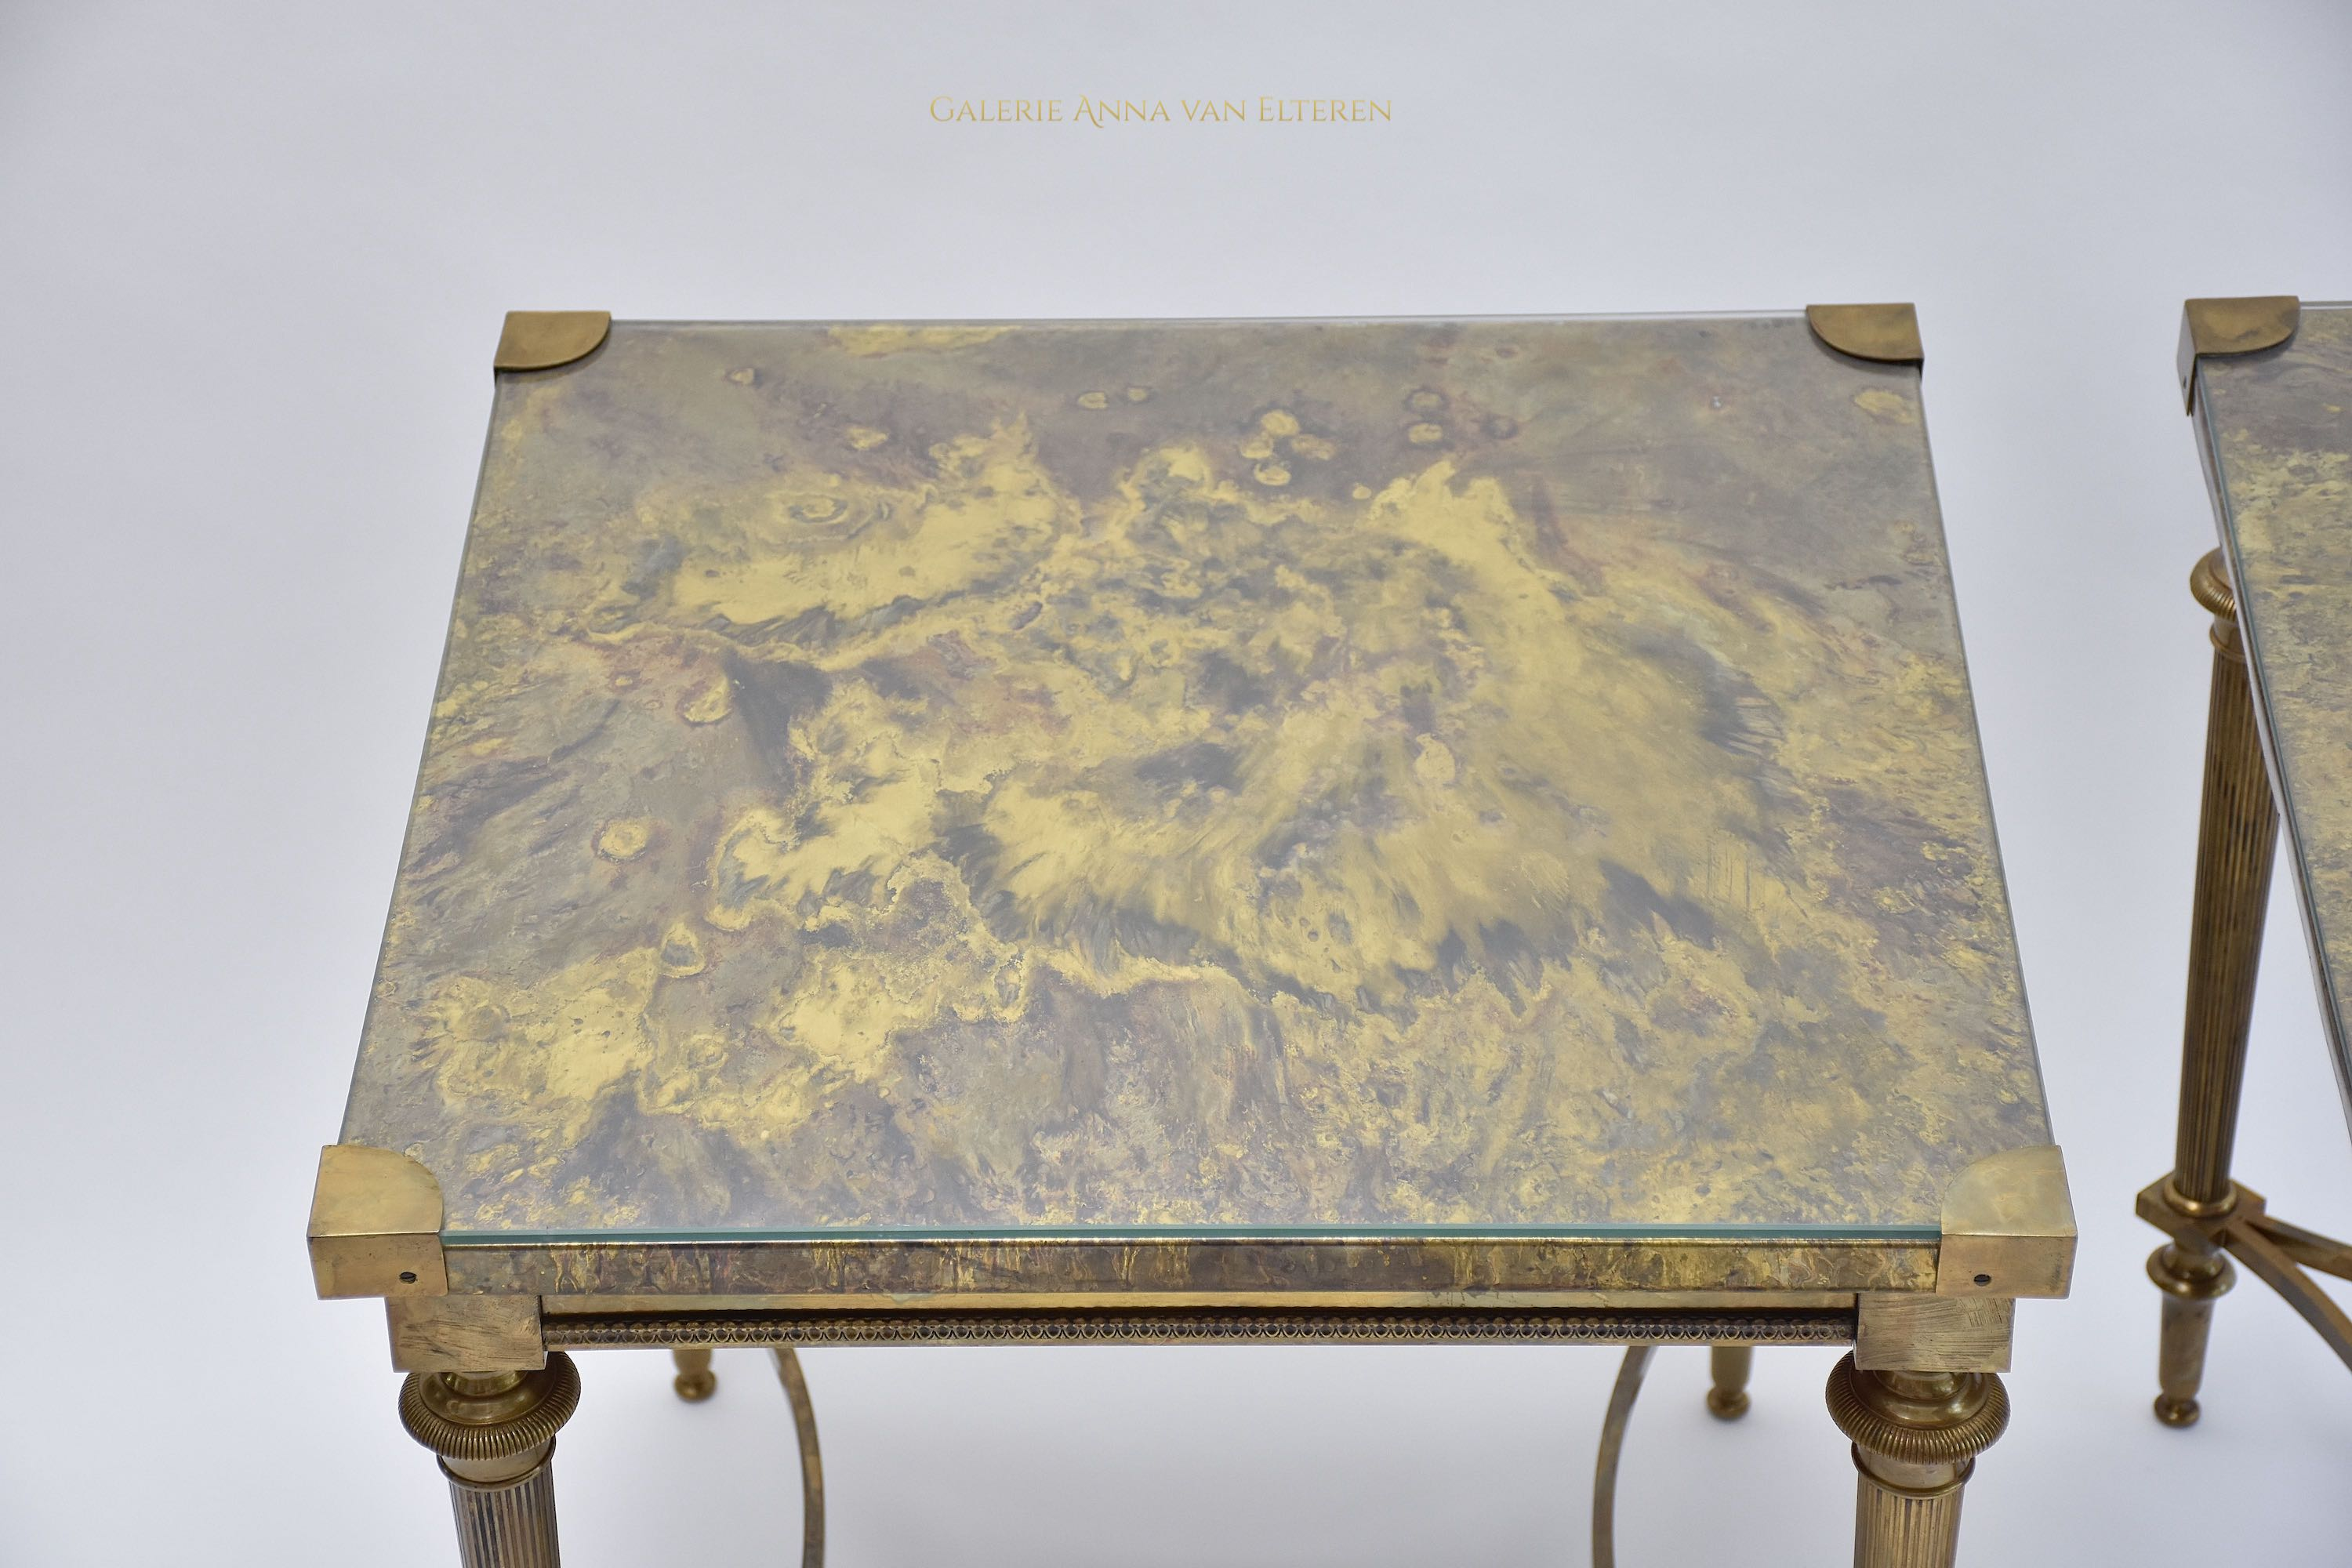 A pair of neoclassical brass side tables